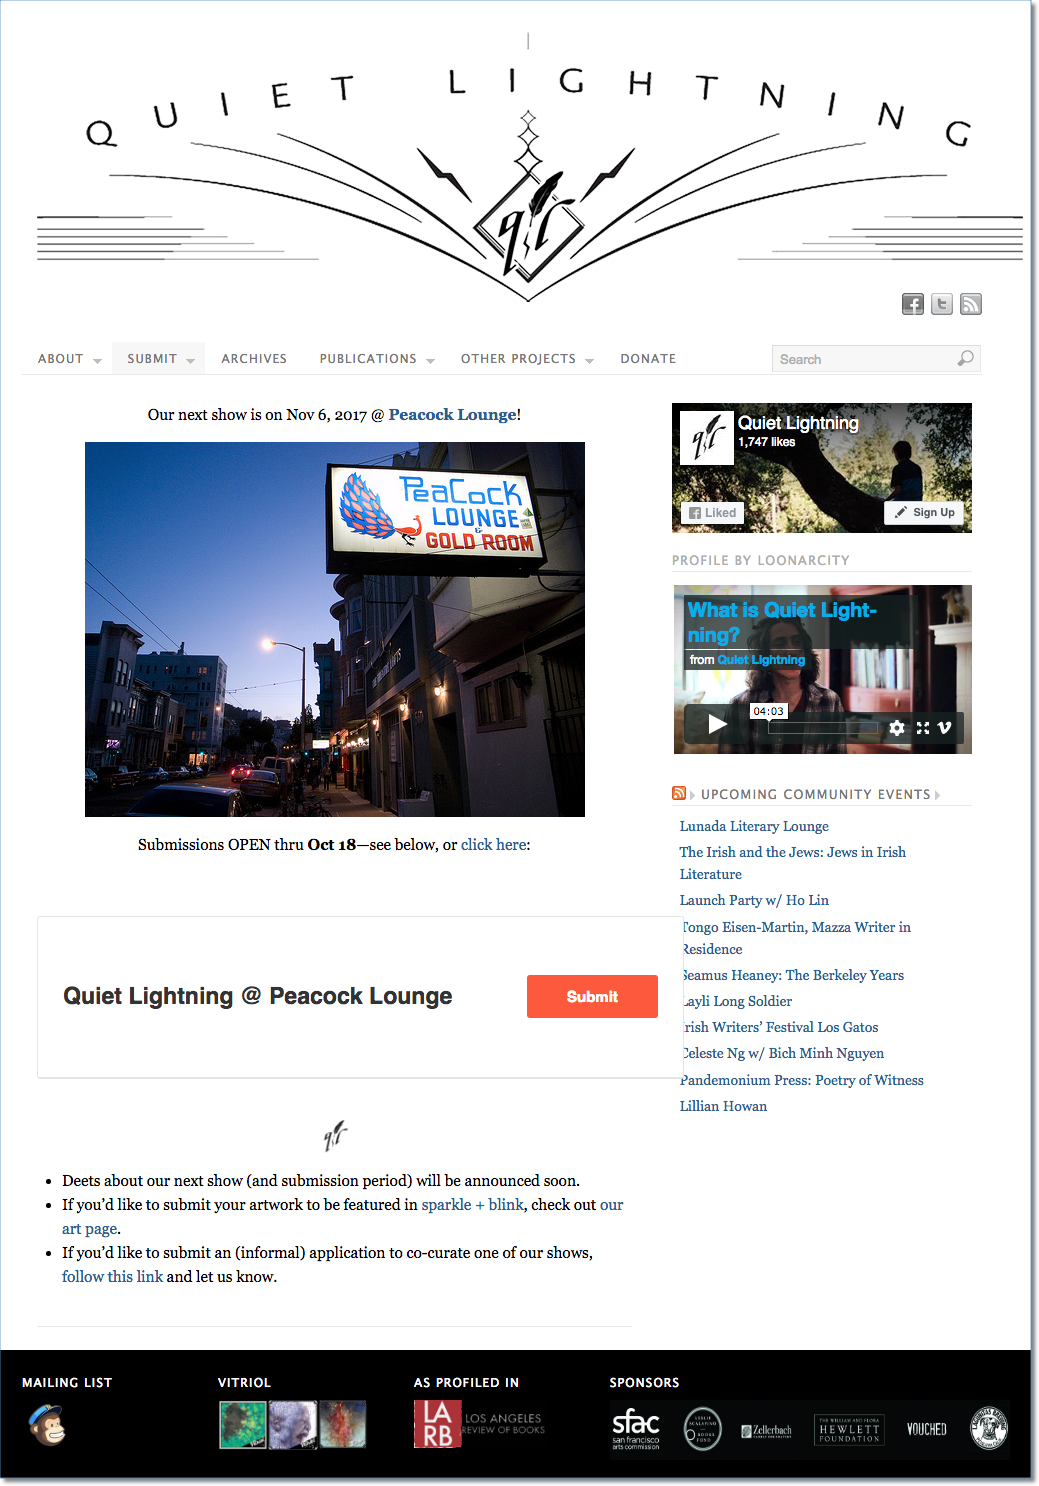 The Challenge:You Get What You Pay For - Quiet Lightning is an entirely volunteer-run organization, and the bootstrapping shows in the website.It's virtually unnavigable. It isn't built for social or mobile. Visually, it's...unfortunate-looking.Literature in San Francisco defines cool. This is Kerouac and Ginsberg, Twain, Steinbeck, Jack London.COOL. Passionate deliveries in dark dive bars. COOL. Quiet Lightning is cool!But their website delivered zero cool.It wasn't pretty, and it actually diverted users away from prime content. In a town that averages 40+significant events competing per night, Quiet Lightning needed help producing an experience that built Anticipation, maximized the Happening, and elongated the Reliving of their can't-miss events.